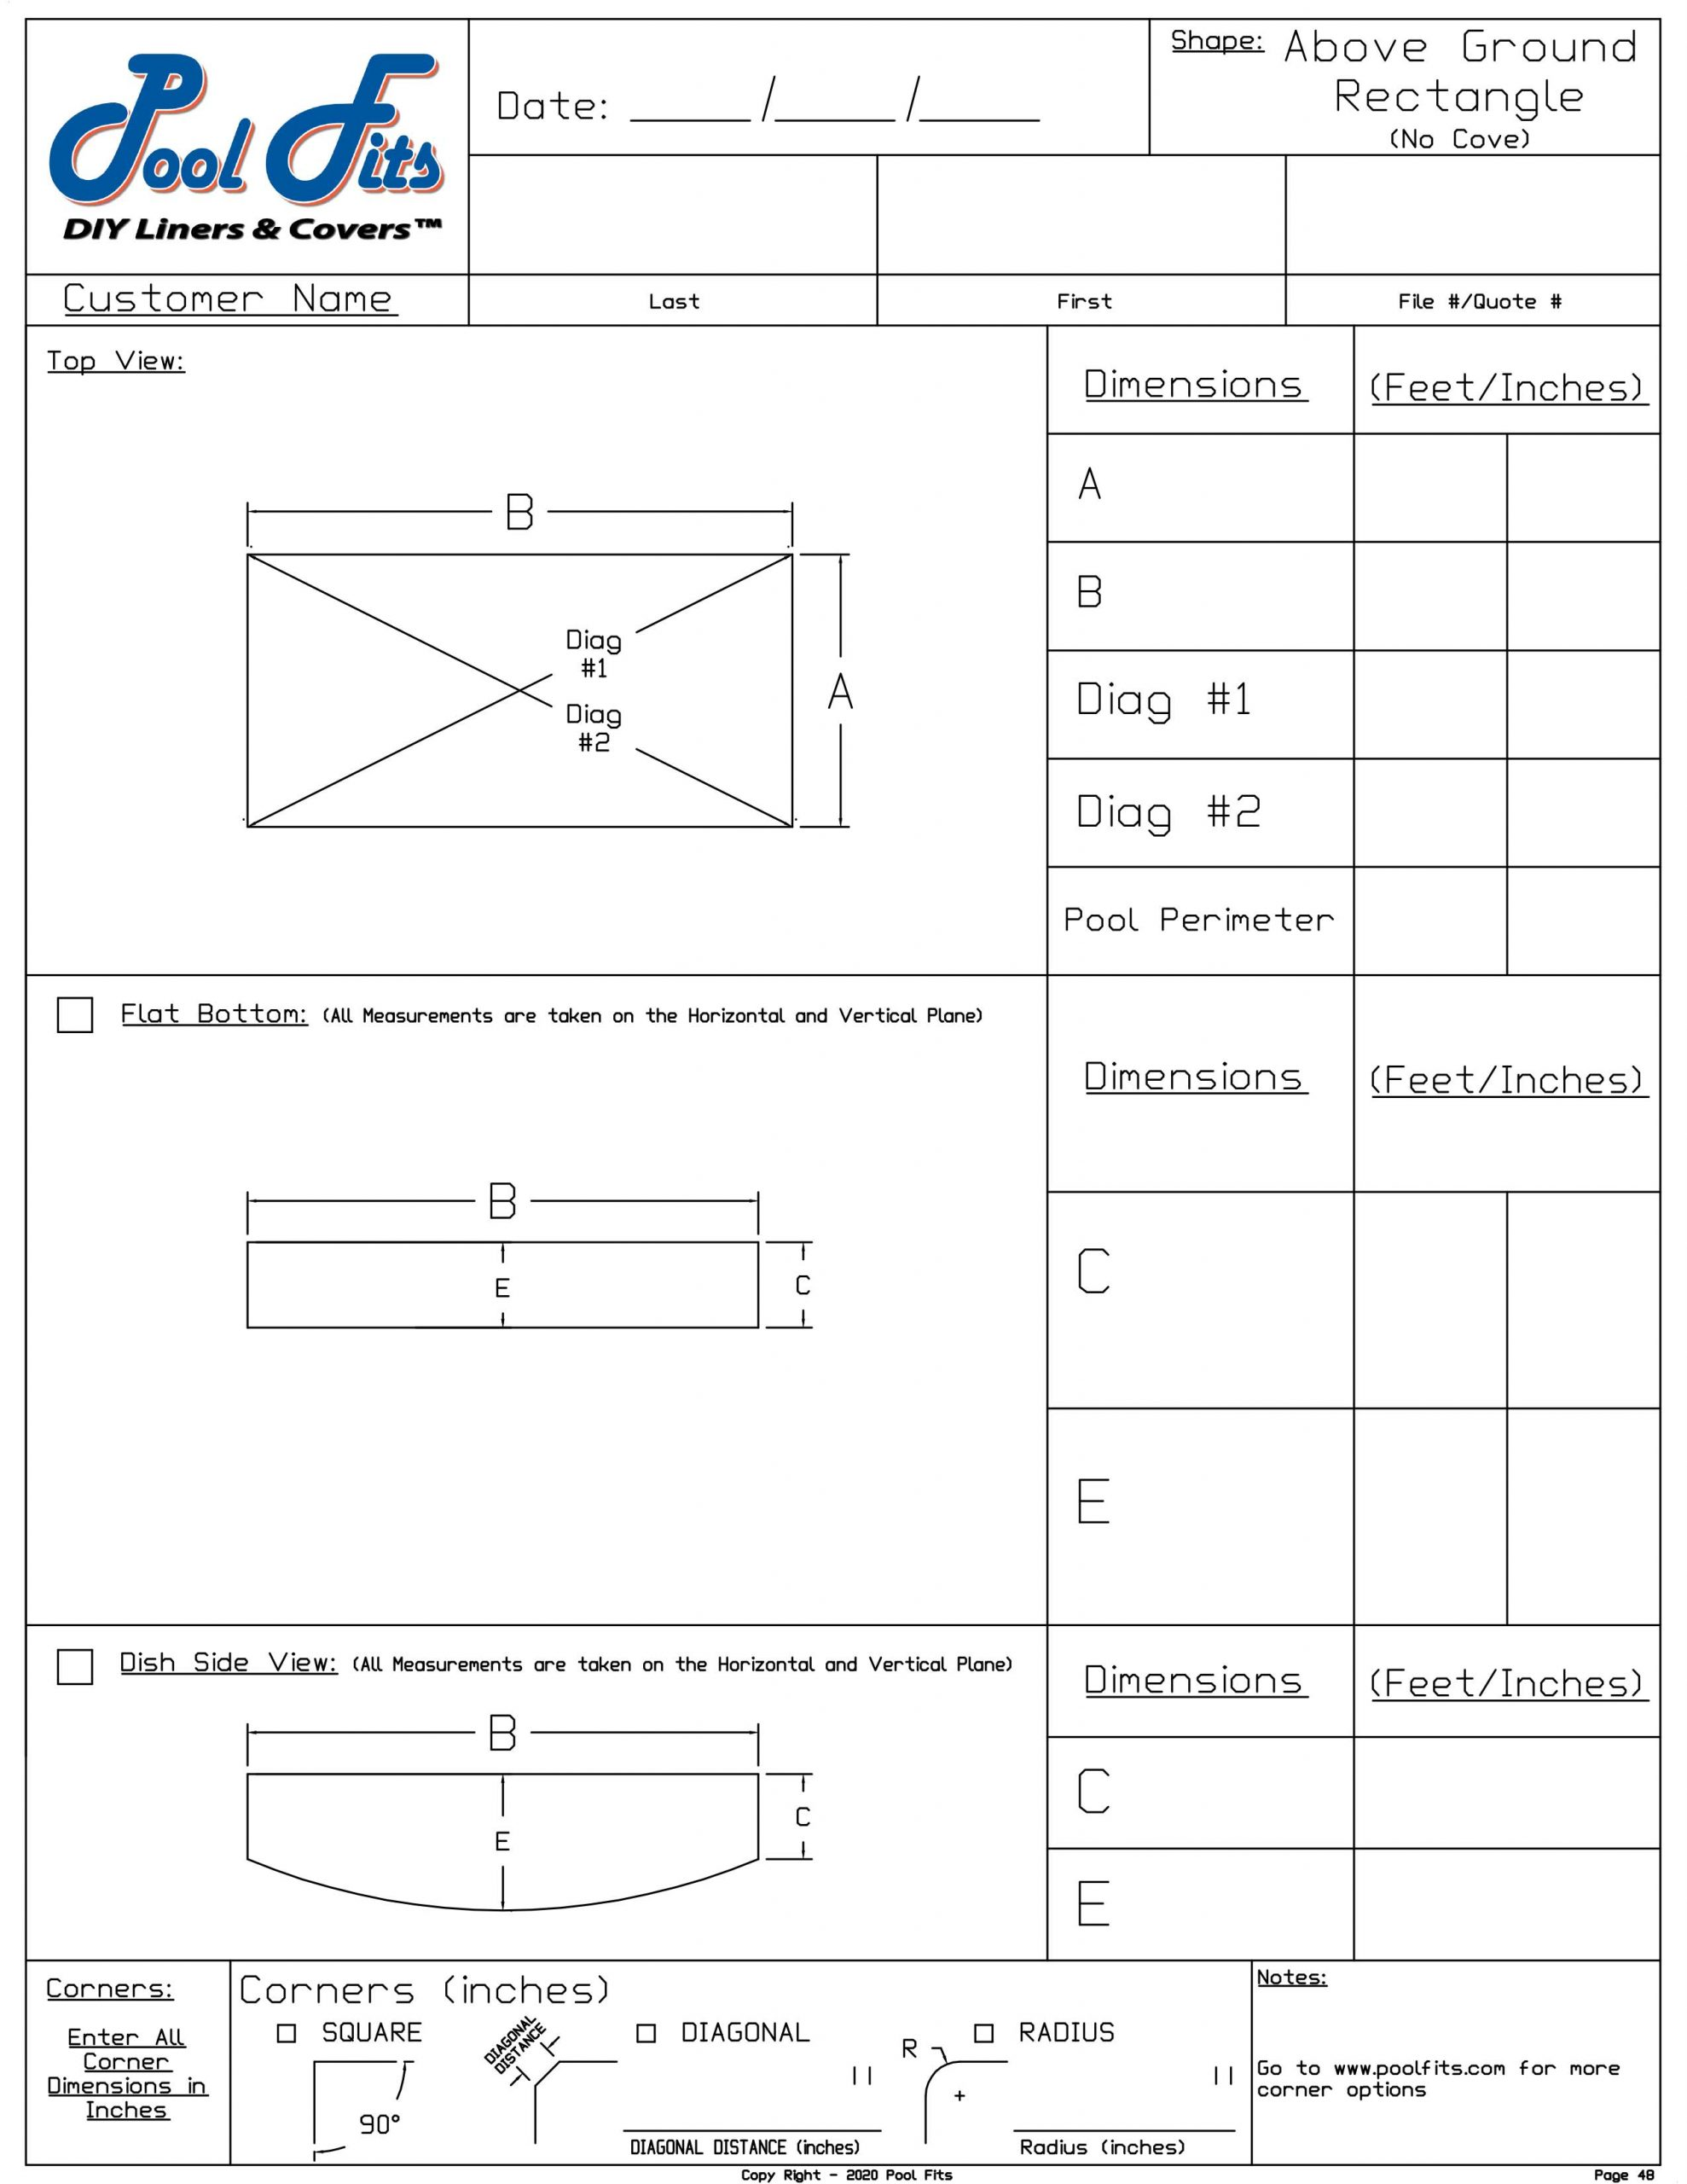 Above Ground Rectangle Measurement Form